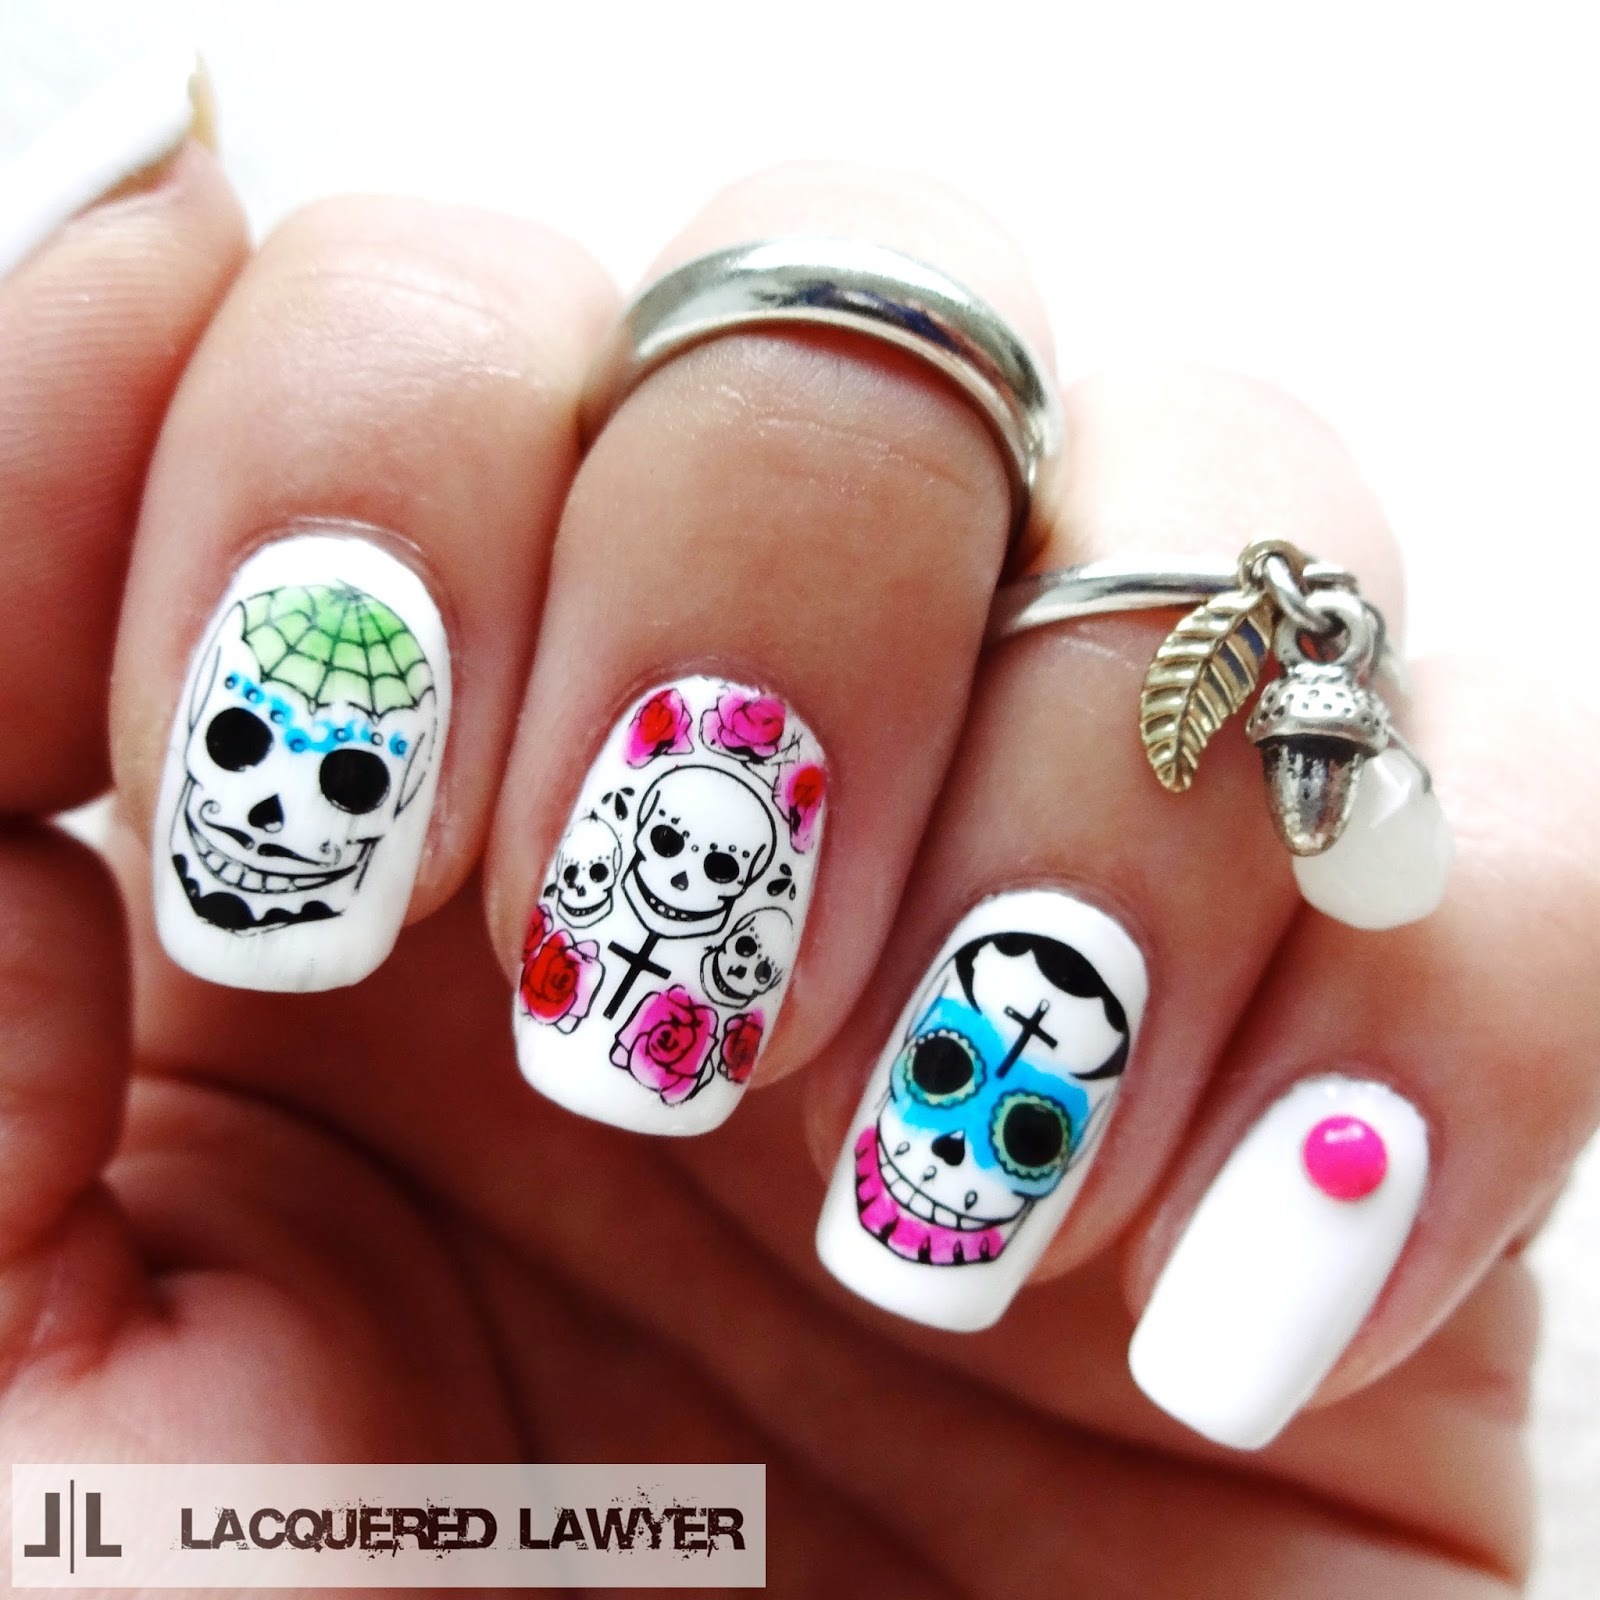 Lacquered Lawyer | Nail Art Blog: Dia De Los Muertos